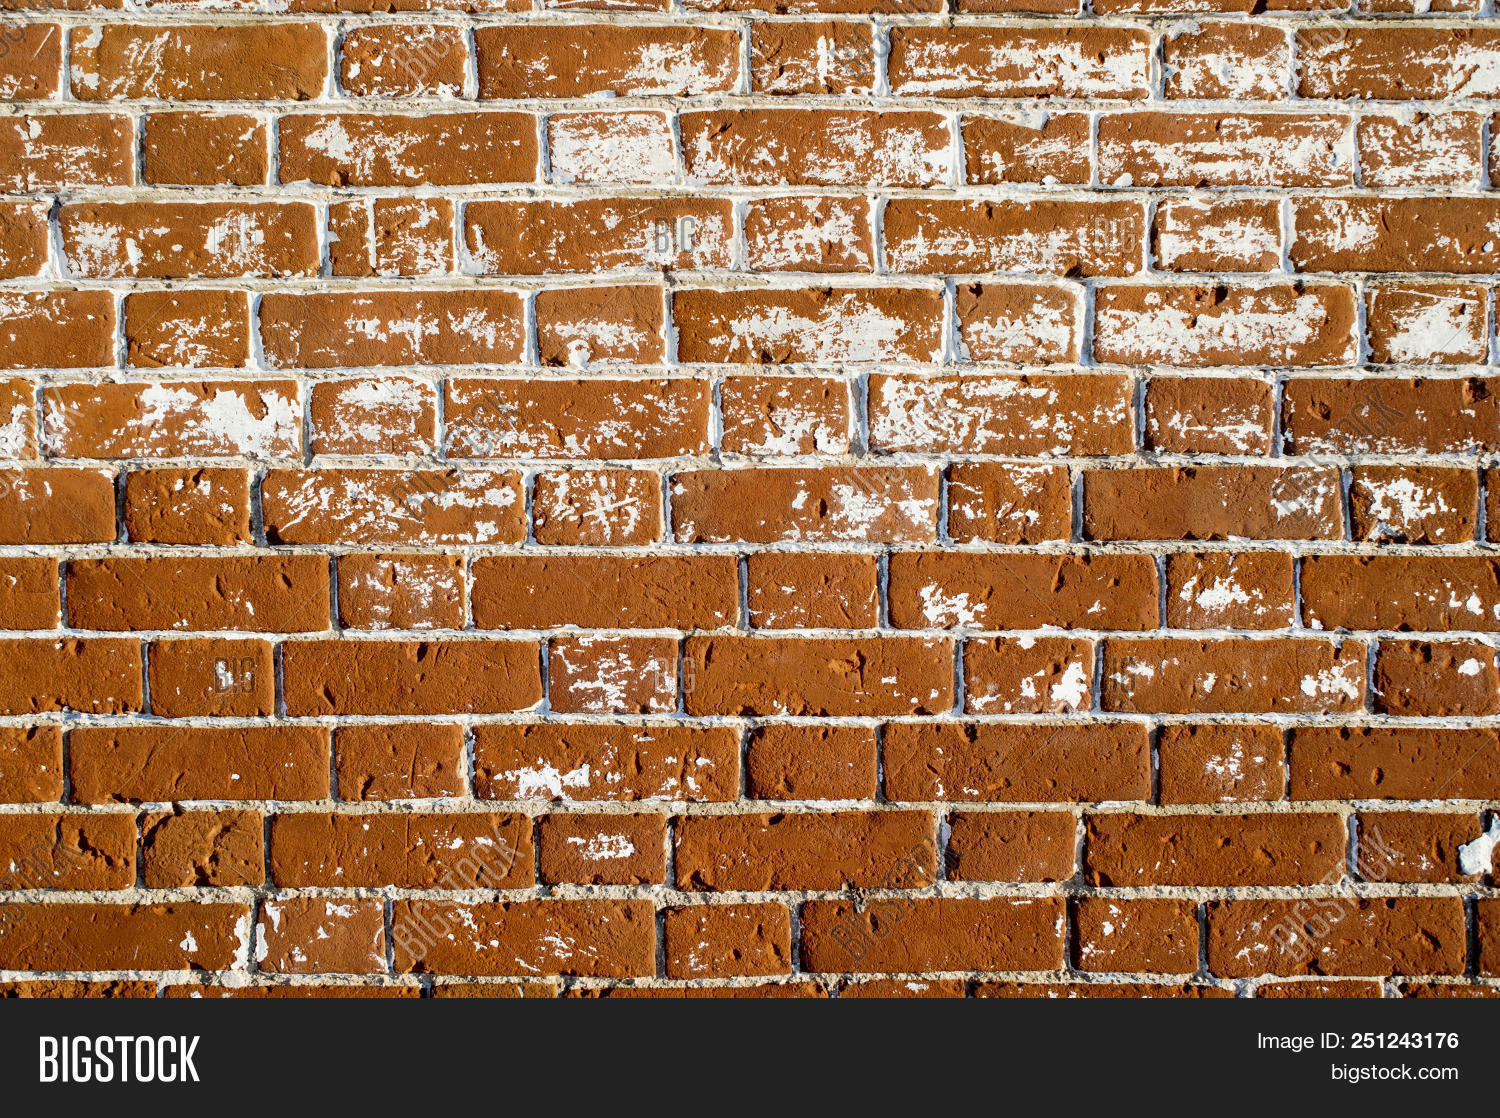 Swell Part Wall Old House Image Photo Free Trial Bigstock Download Free Architecture Designs Embacsunscenecom